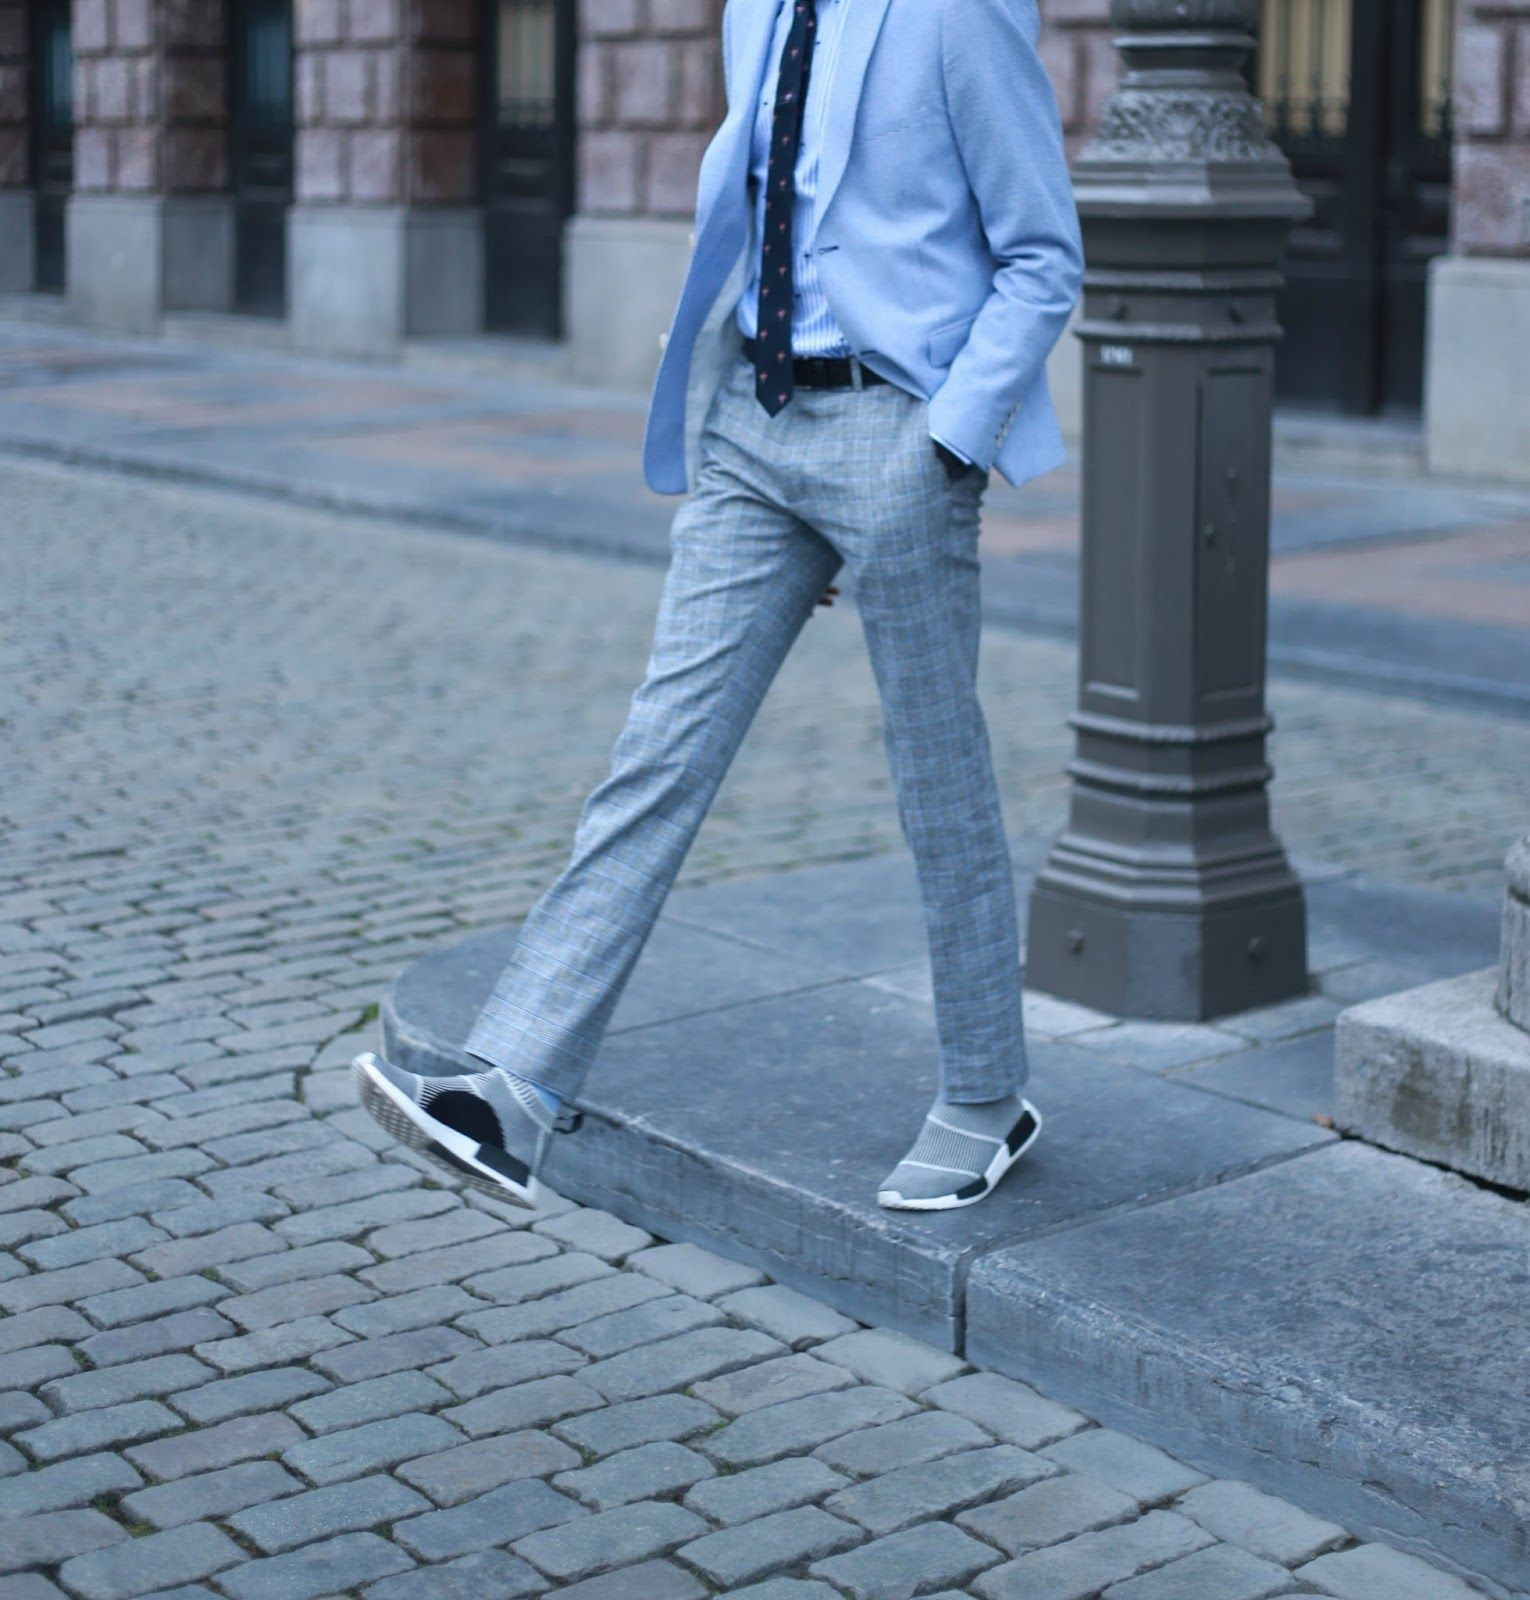 Business Chic Men 39 S Look We Fashion Adidas Nmd Sneakers Suits And Sneakers Street Style